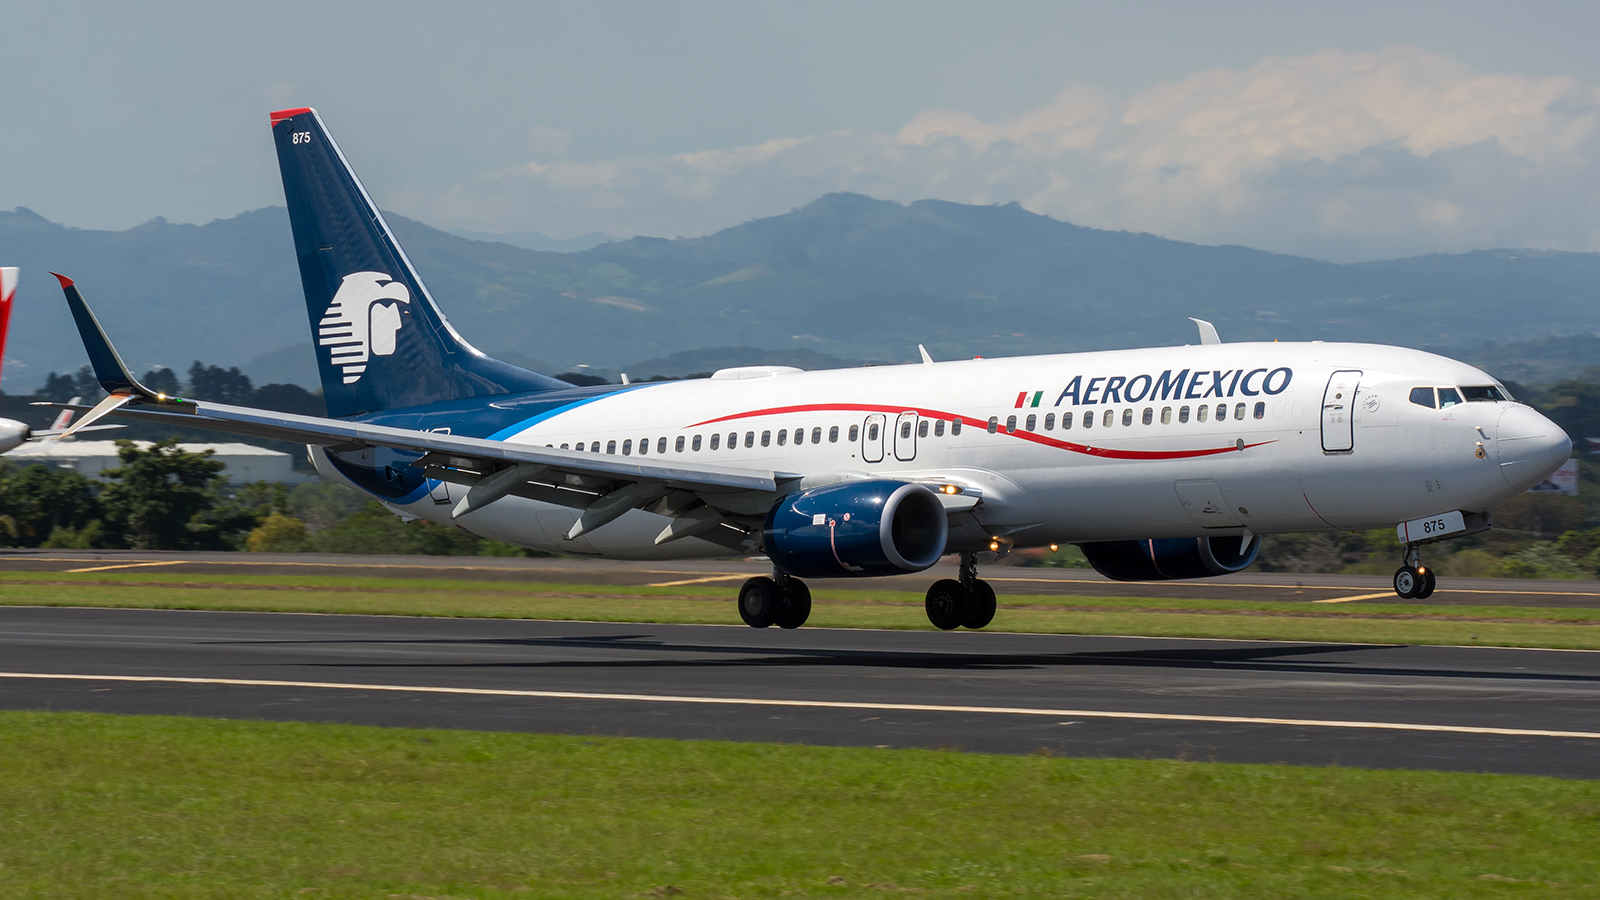 Click image for larger version.  Name:AeroMexico_n875am_17NOV17_1600_34s.jpg Views:22 Size:798.5 KB ID:13028